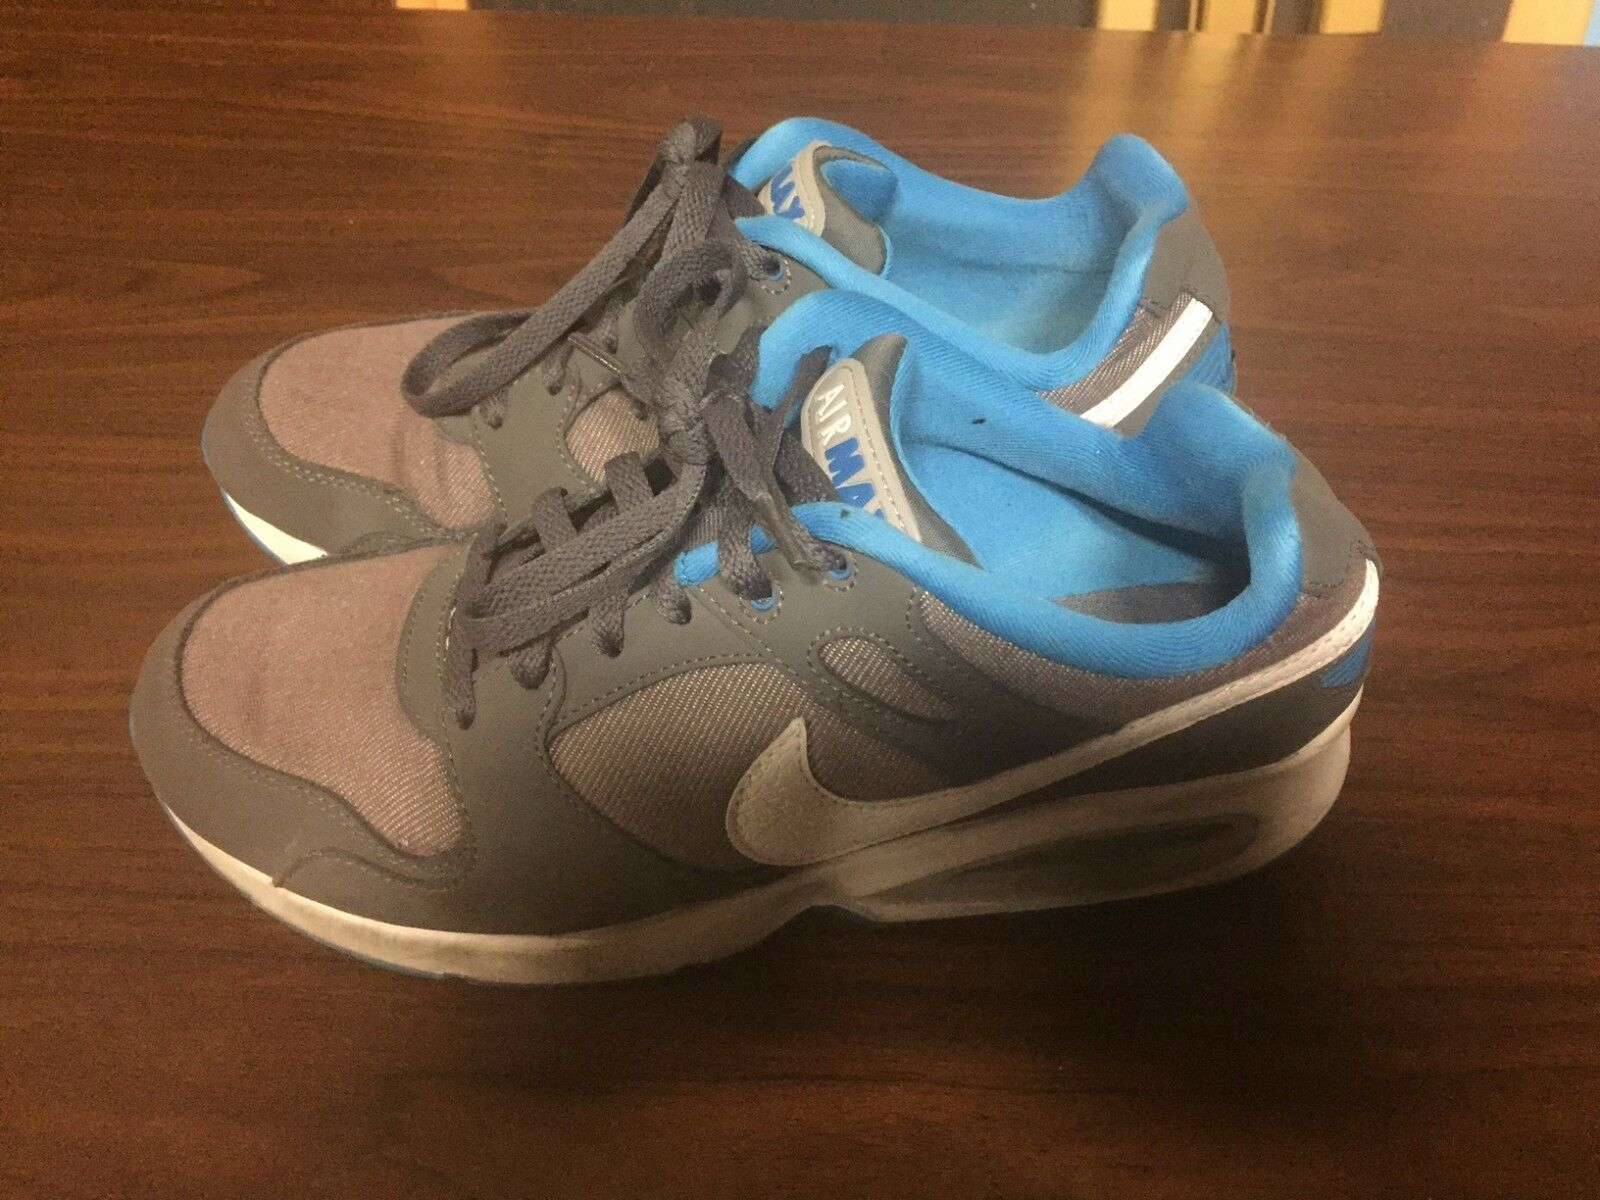 The latest discount shoes for men and women Nike Air Max White Grey Blue Shoes Men's size 8.5